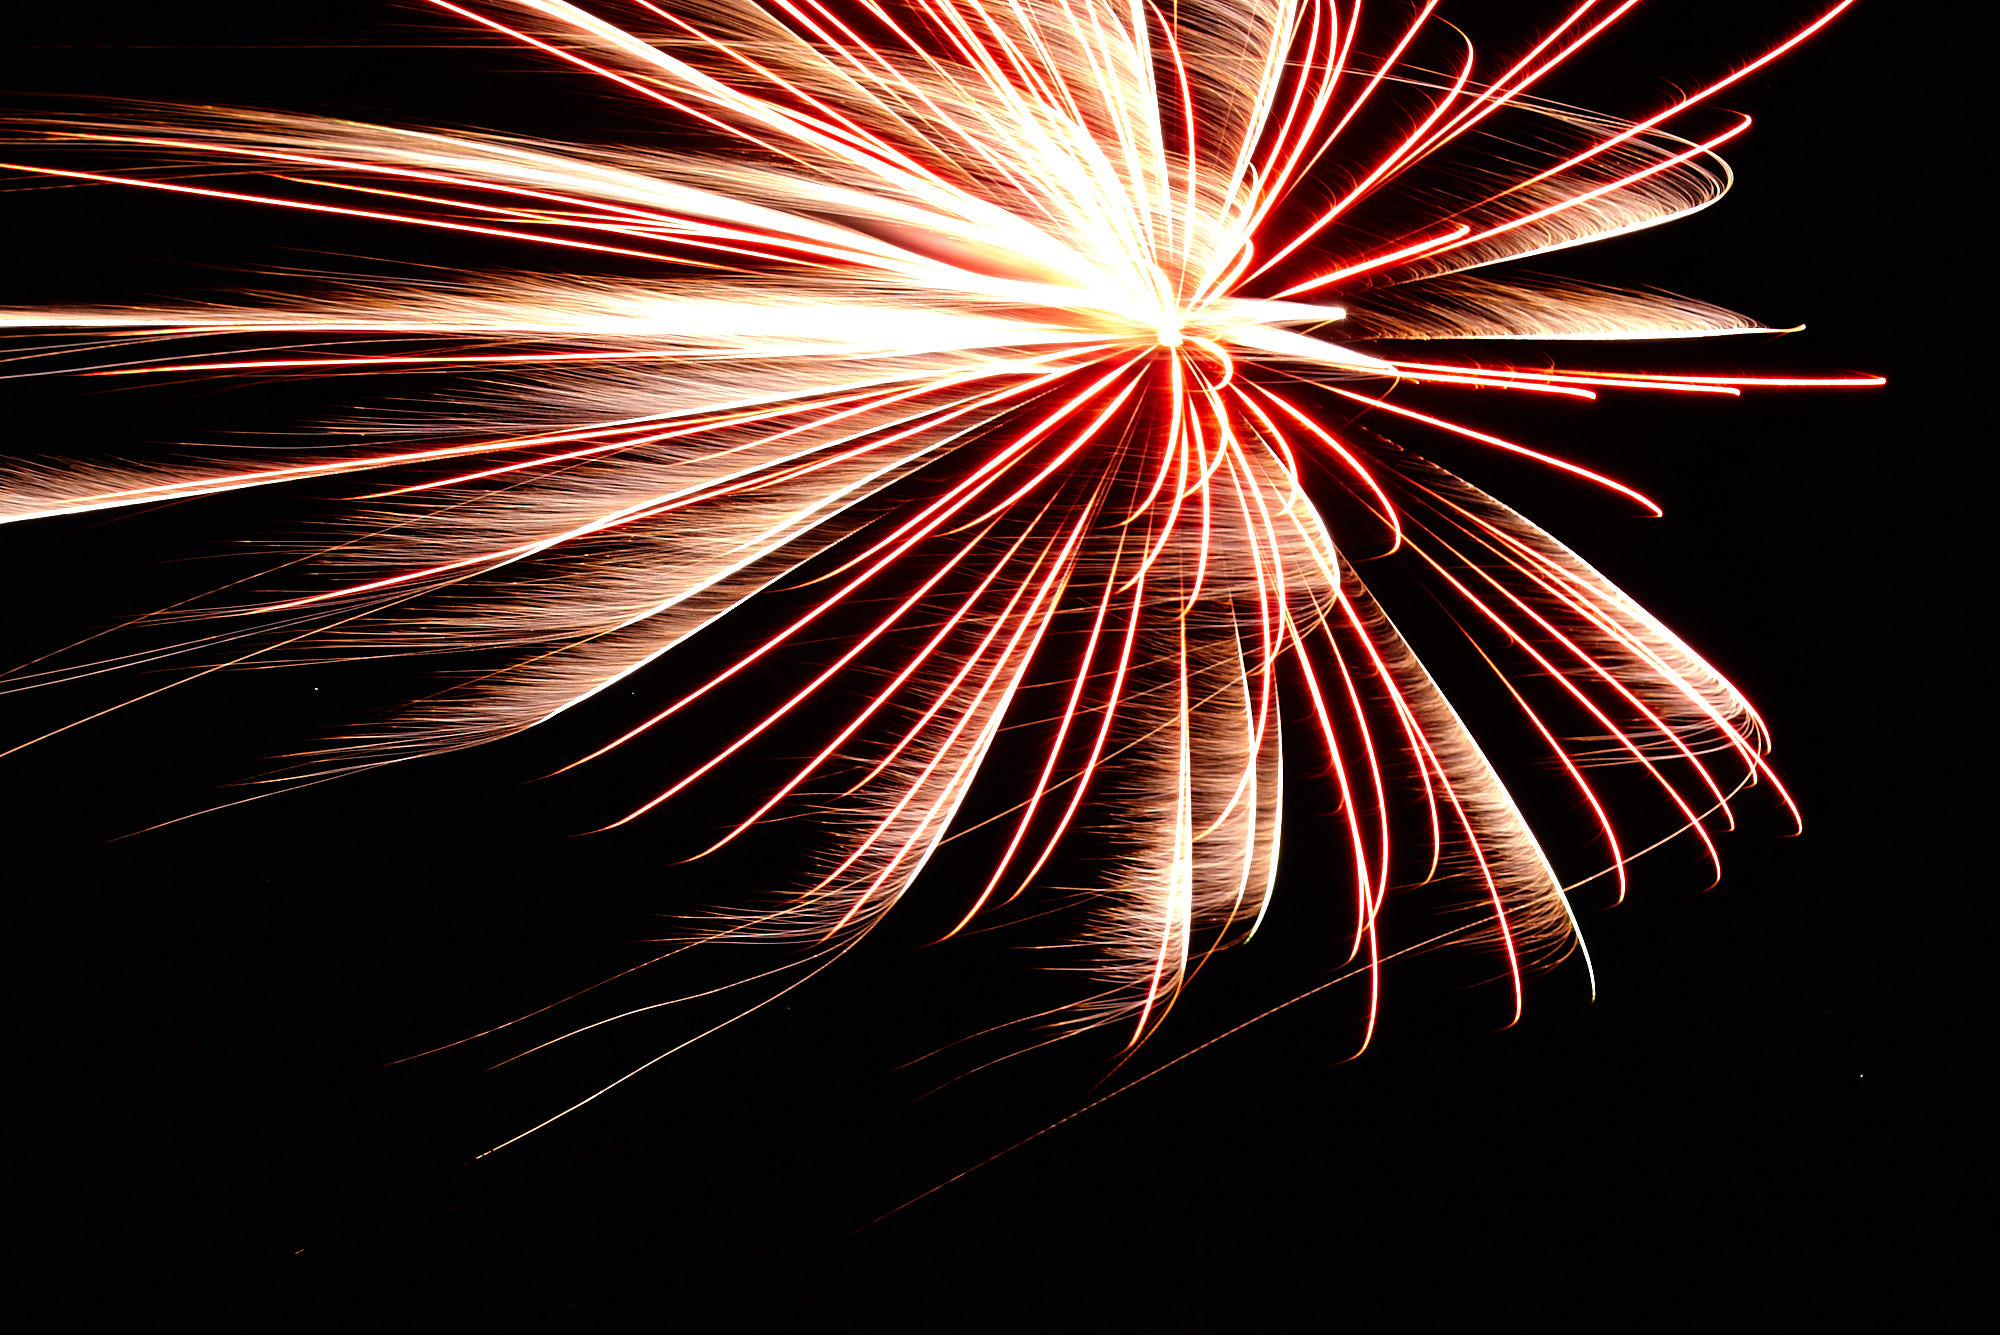 Photographing Fireworks - Proper Exposure - About Right